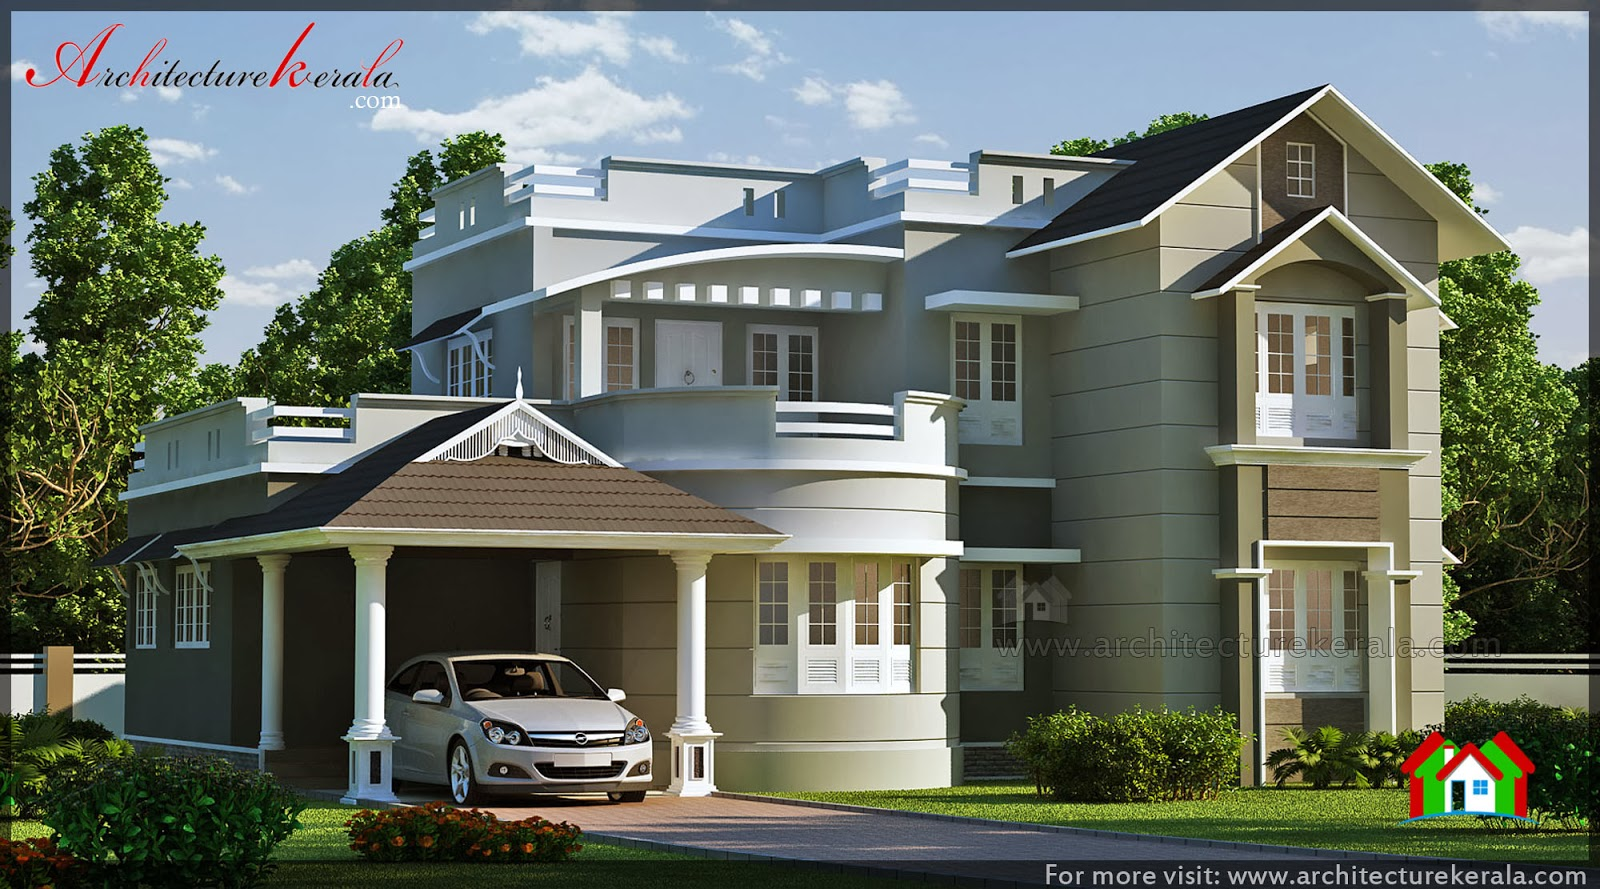 Good looking house design architecture kerala Good house designs in india